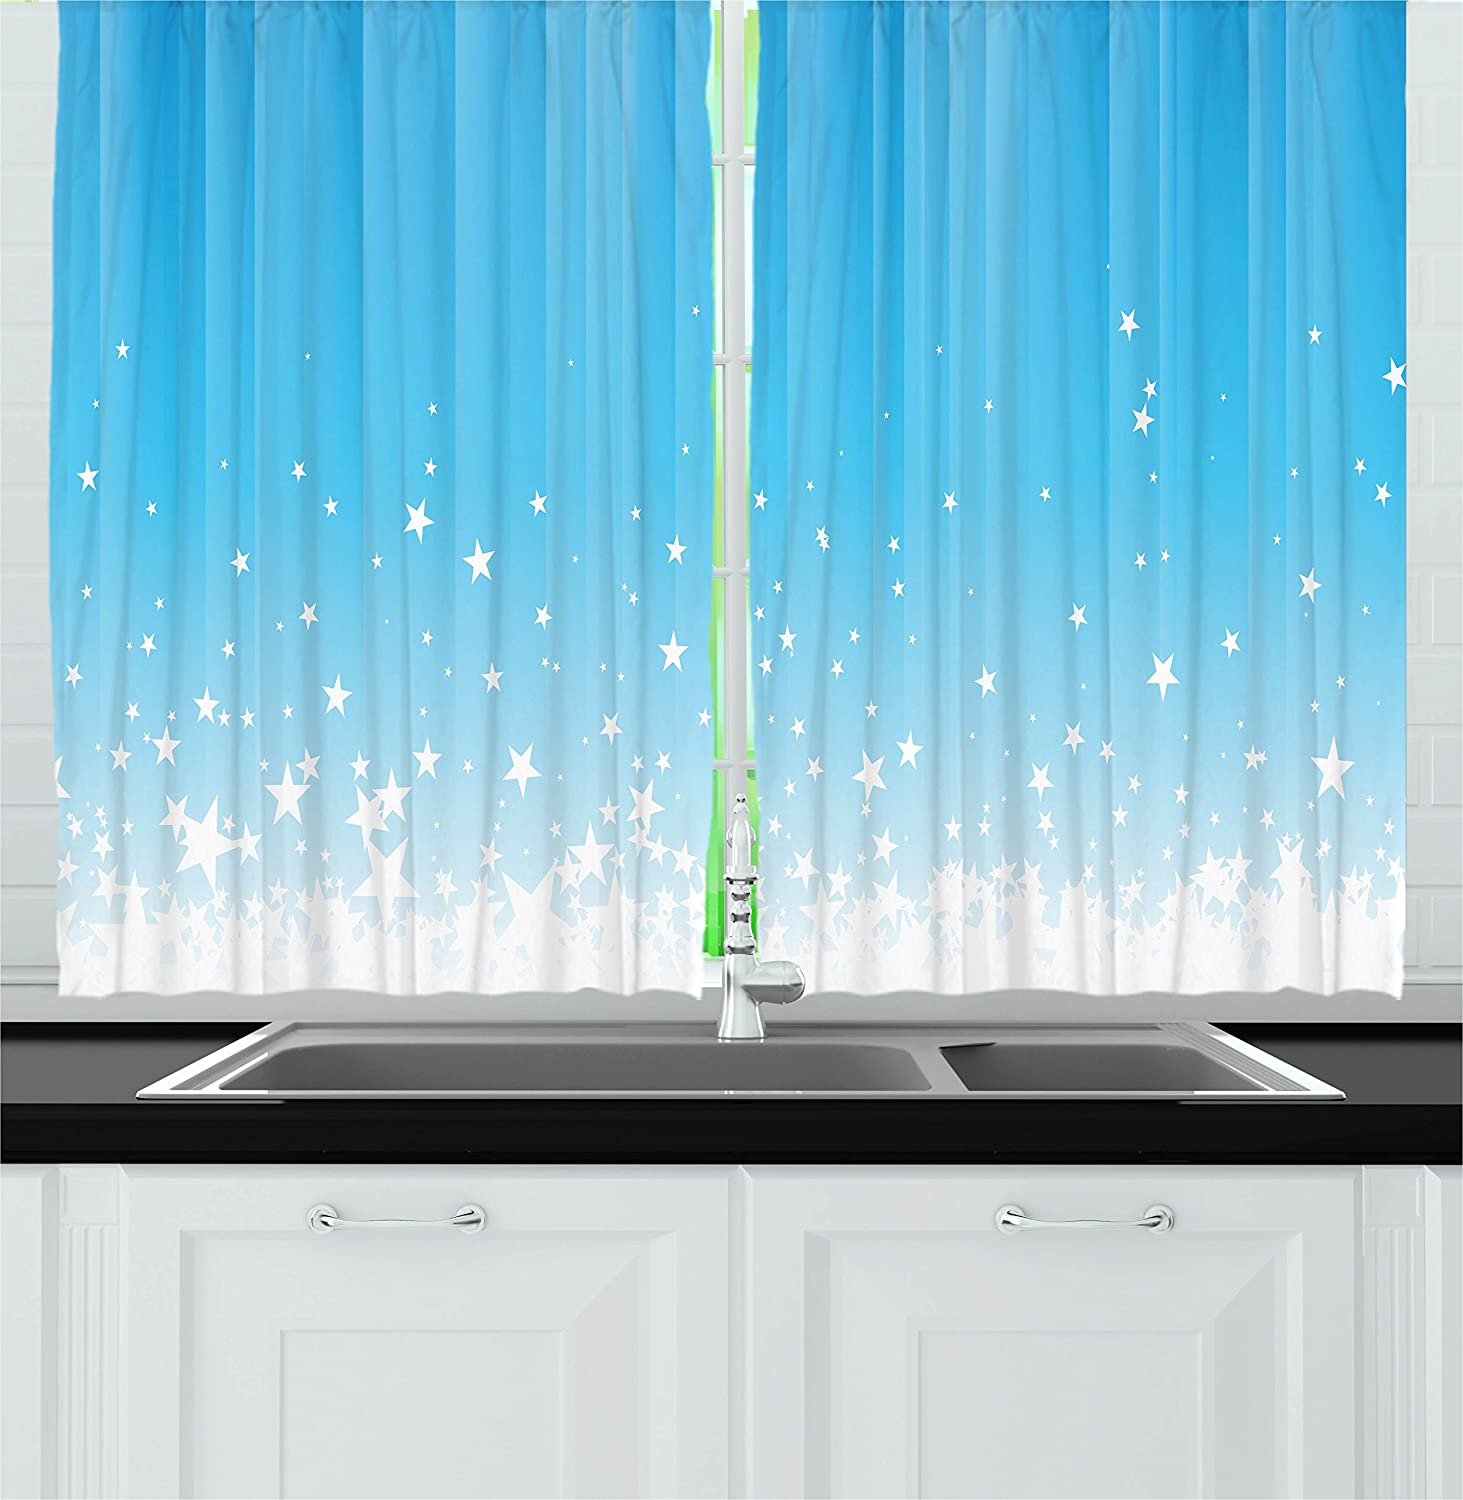 Amazon.com: Ambesonne Abstract Kitchen Curtains, Stars Splashing ...